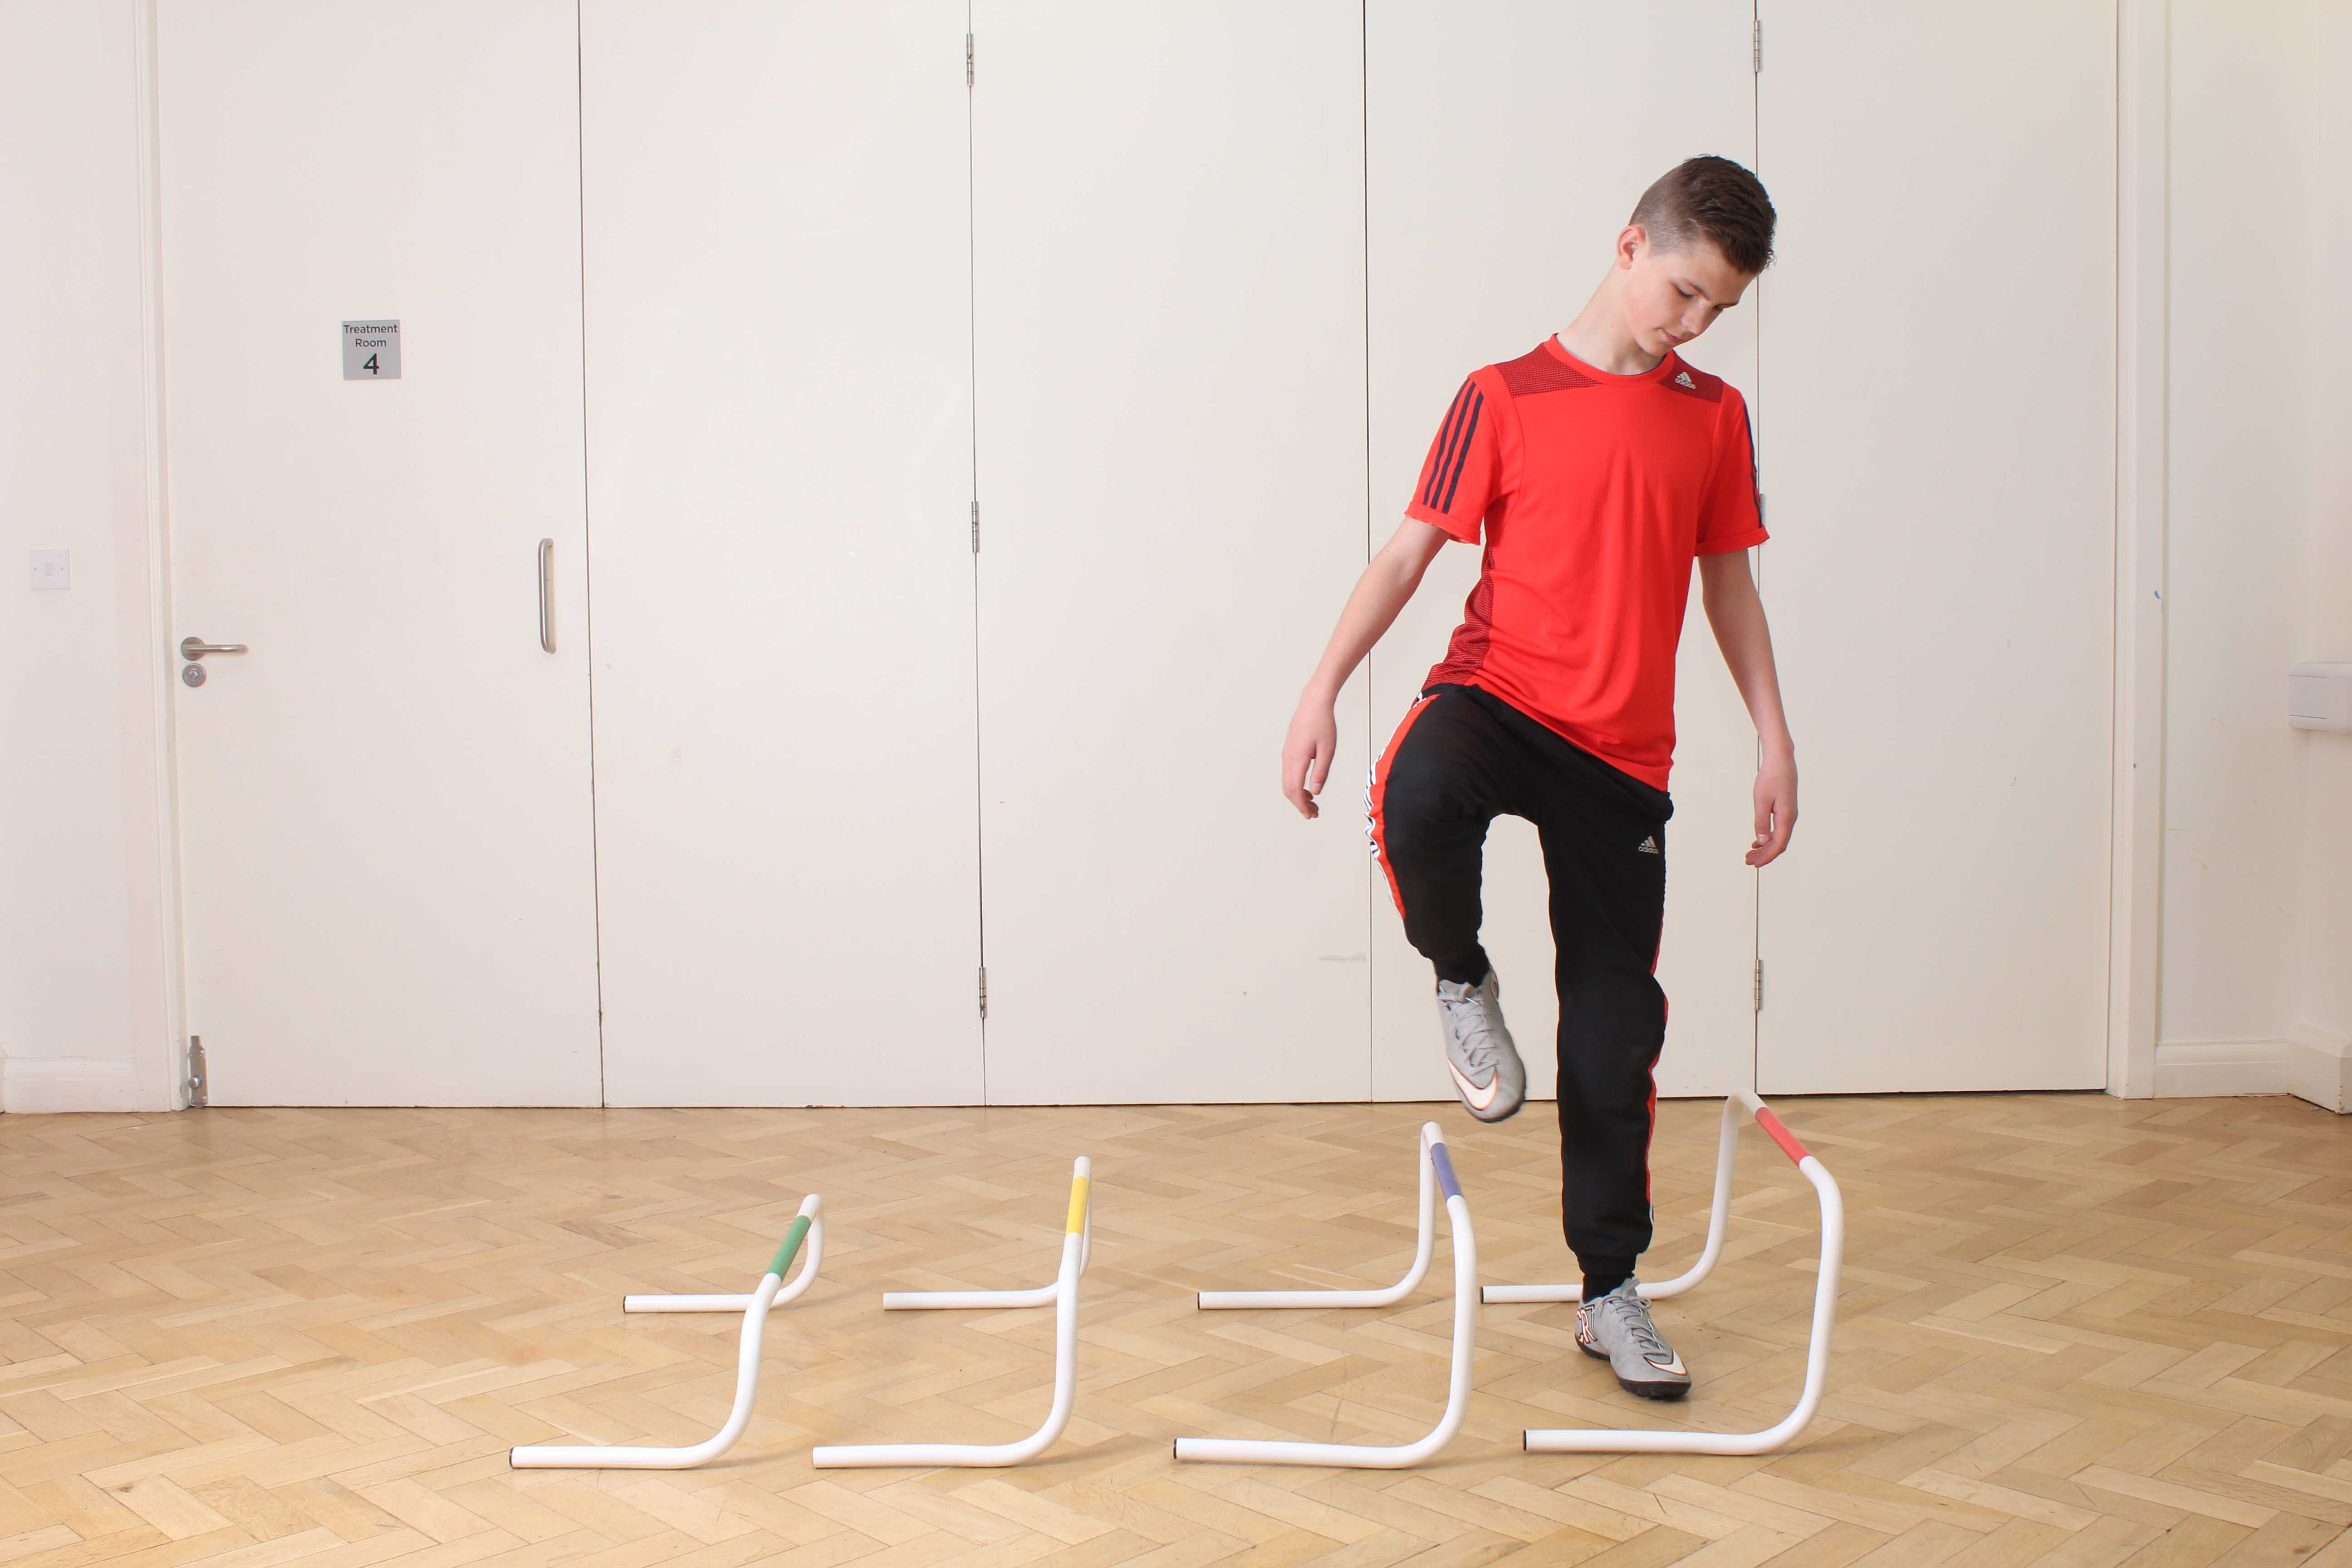 Stability and proprioception exercises cuonducted by a neurological physiotherapist